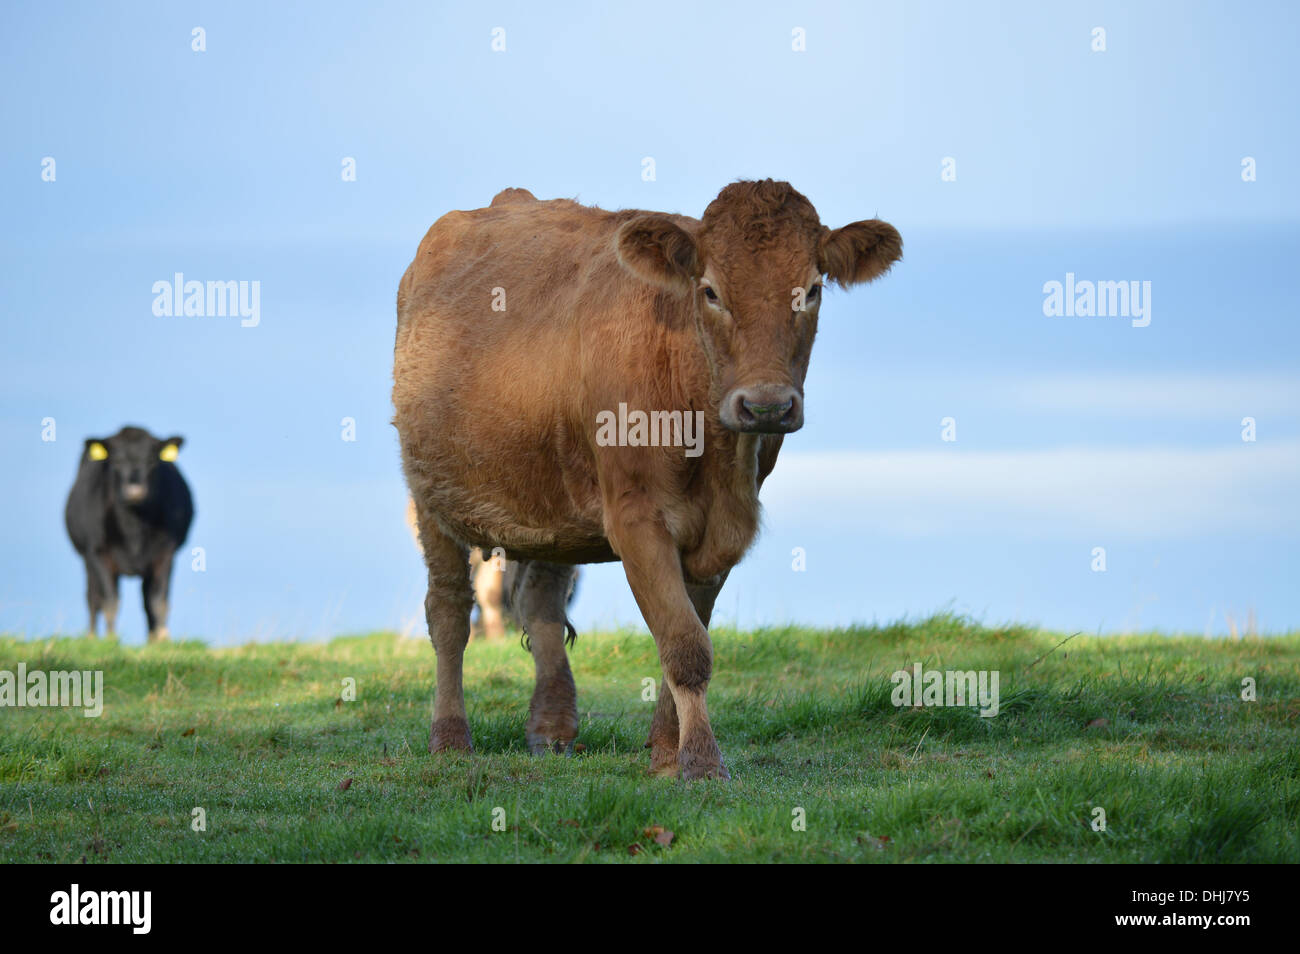 A single cow moves in for a closer look while another black cow remains back, cautiously looking on. - Stock Image